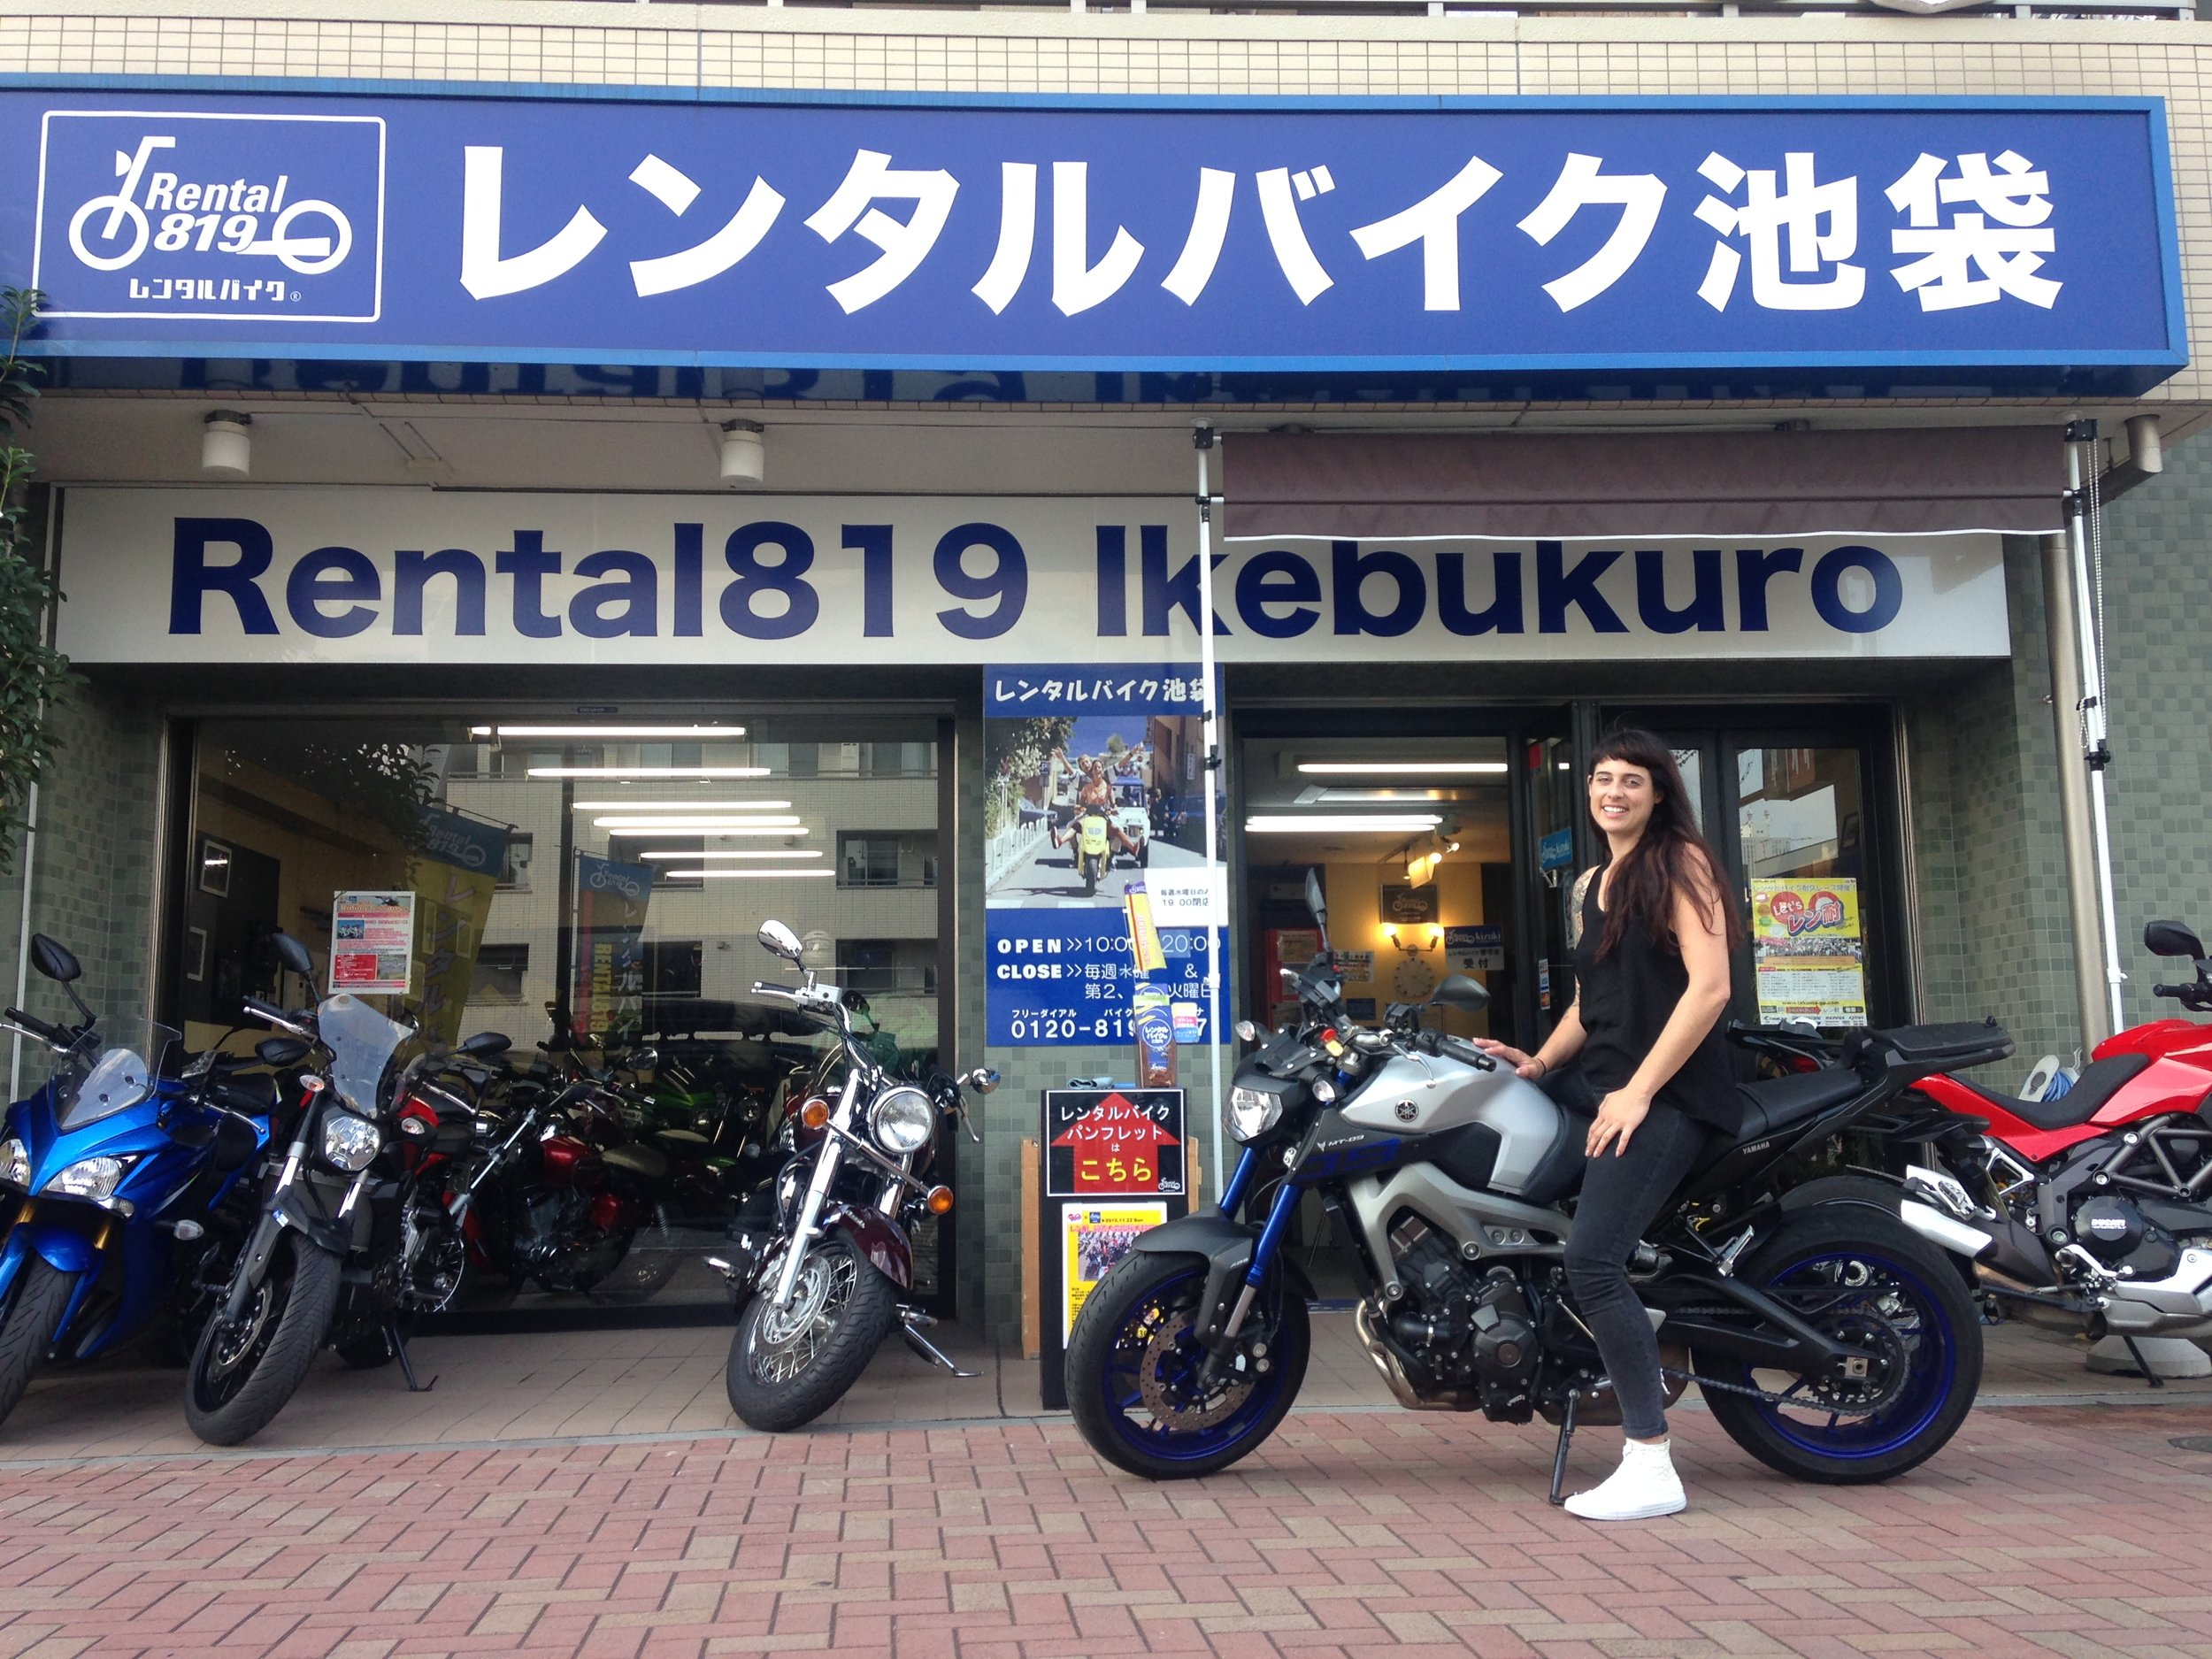 Japanese Road Trip #2 with the Yamaha MT 09. Tokyo - Motegi - Nikko in Autumn